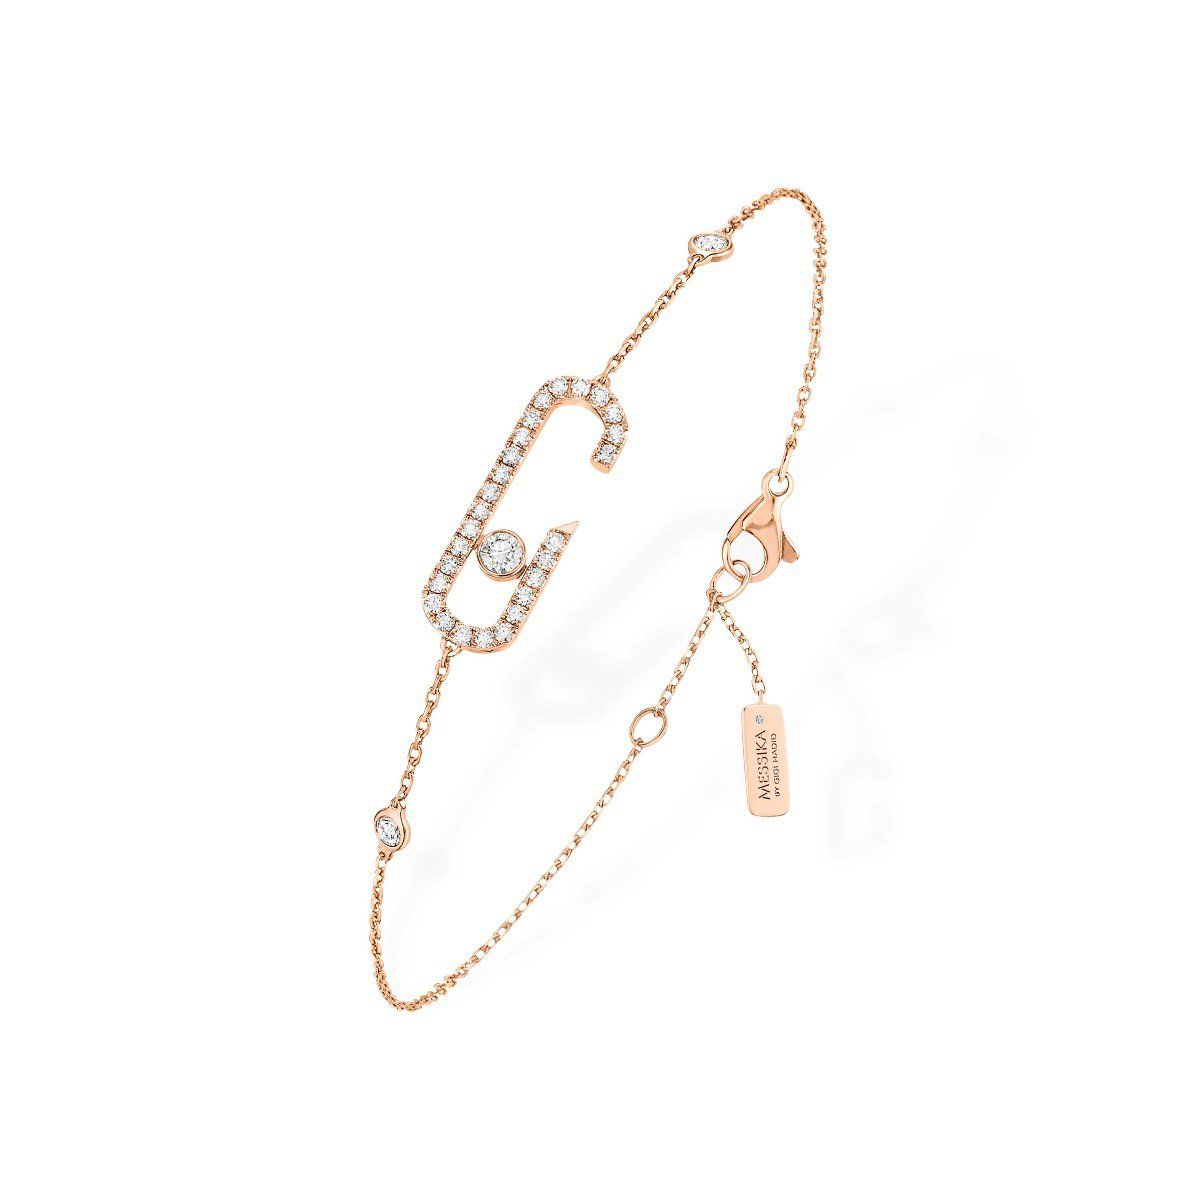 Move Addiction Pavé Bracelet - pink gold